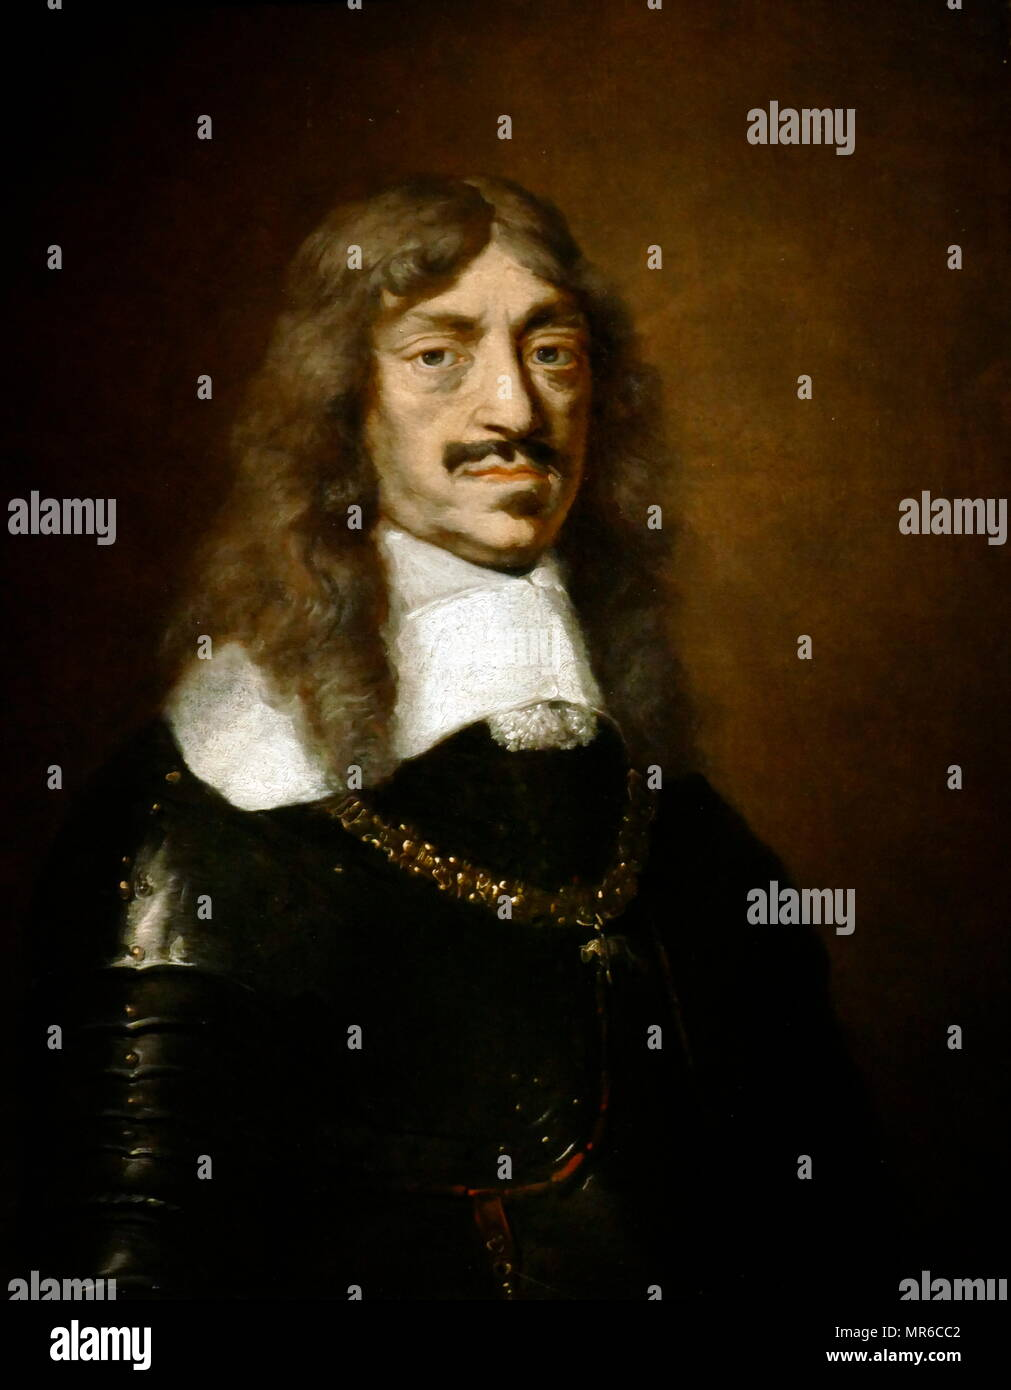 Jan Kazimierz, King of Poland, 1648-68. portrait by Daniel Schultz, ca. 1658. John II Casimir (1609 –  1672), was King of Poland and Grand Duke of Lithuania, and titular King of Sweden 1648–1660. - Stock Image